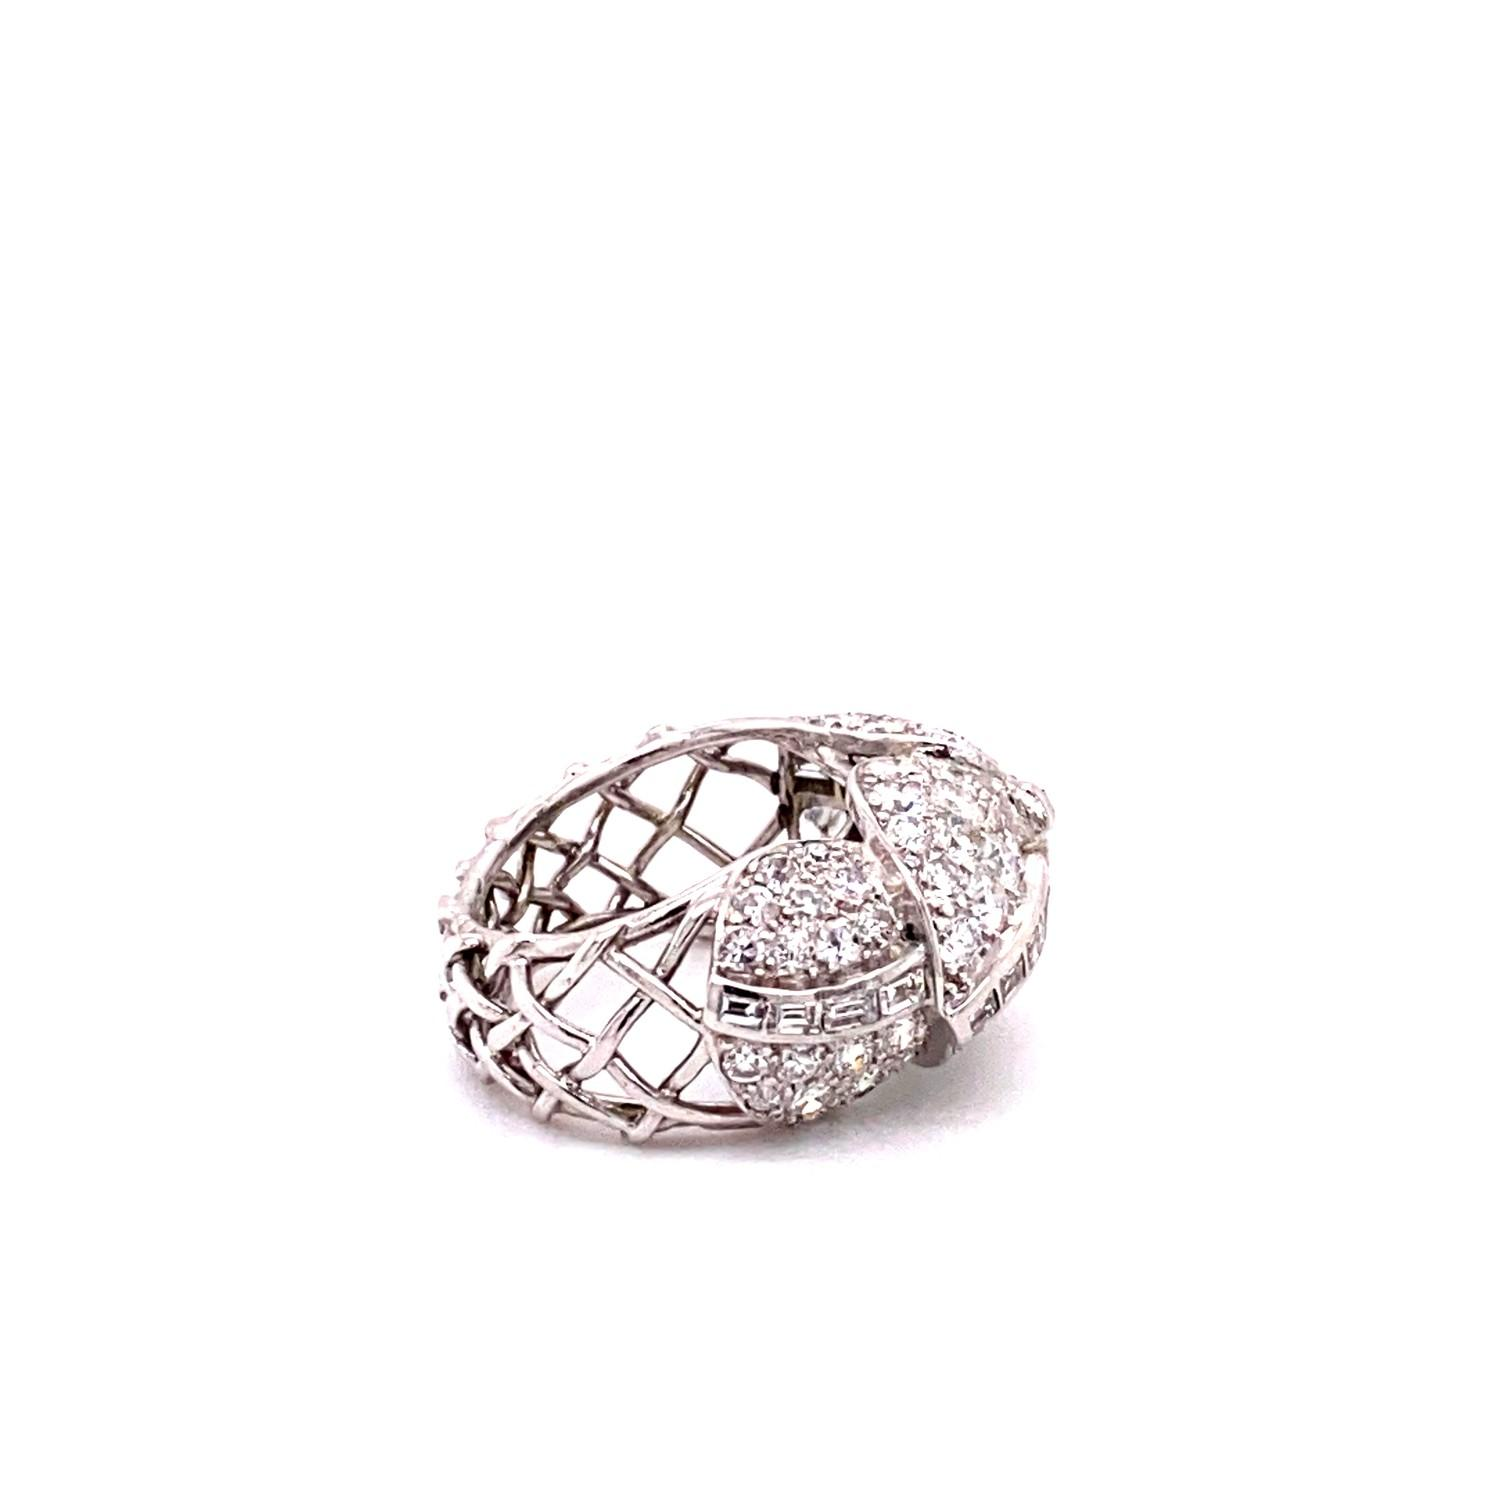 A 1950's Cartier Cocktail Ring, Cartier baguette and brilliant cut pave set dome top bombe ring - Image 2 of 8